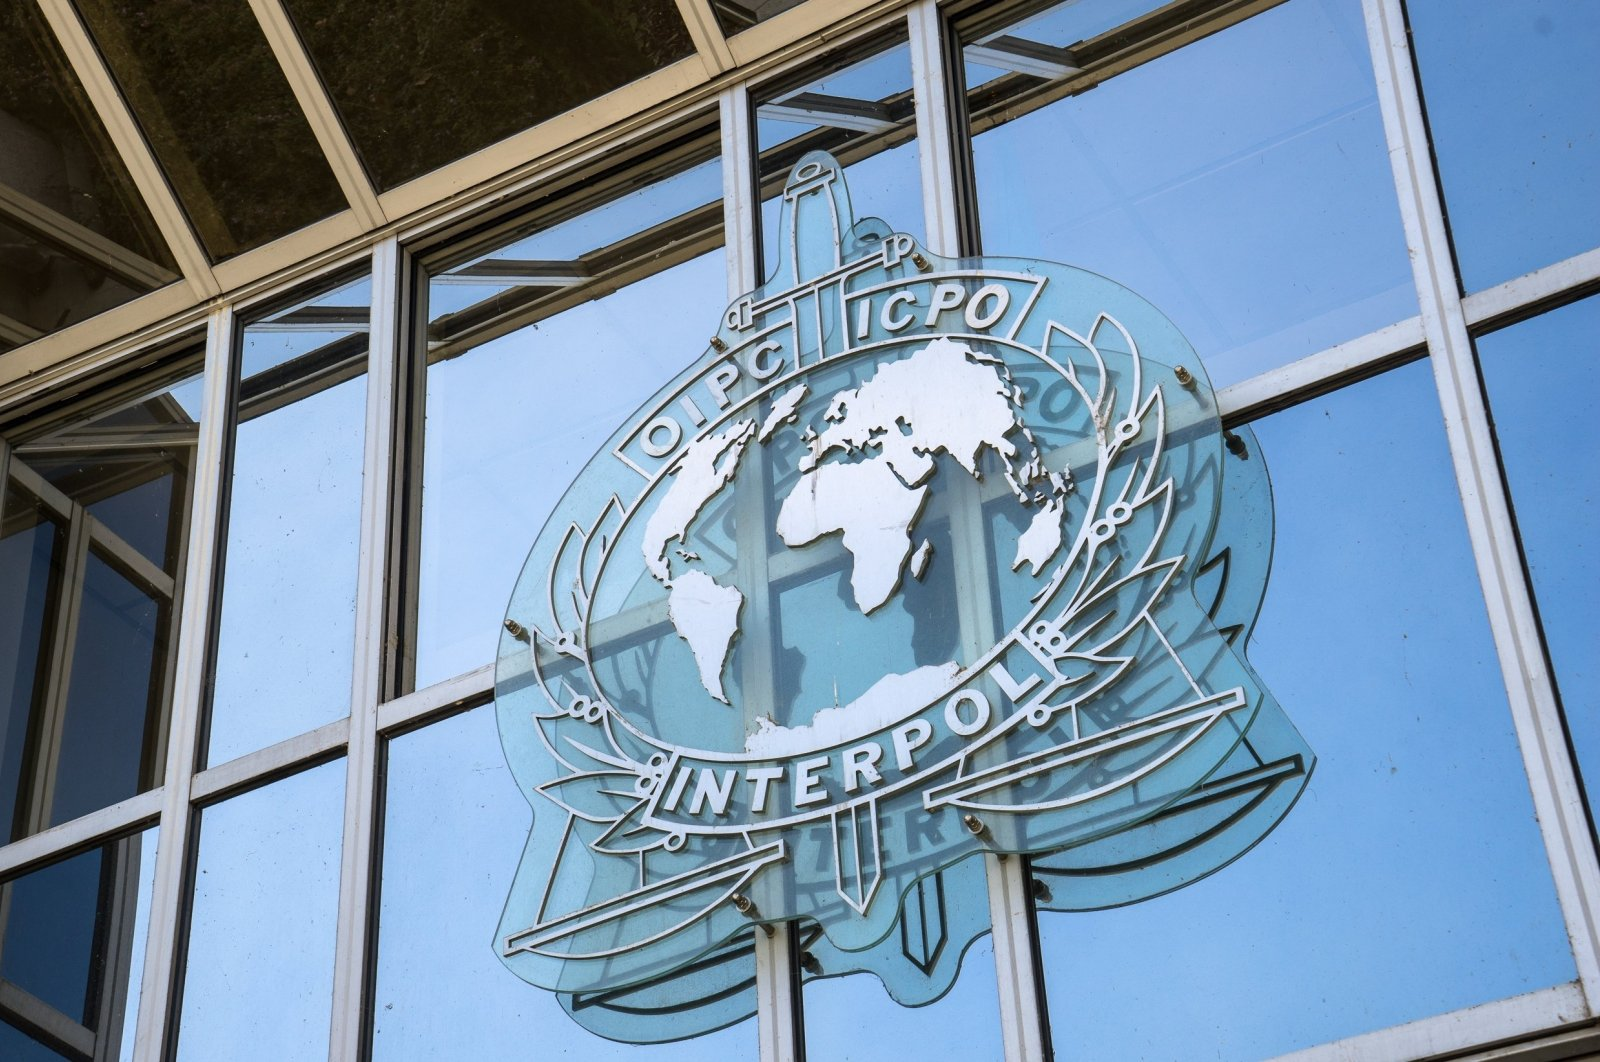 A sign on the facade of the Interpol headquarters. Interpol is an intergovernmental organization facilitating international police cooperation, Lyon, France, Sept. 21, 2015. (Shutterstock Photo)